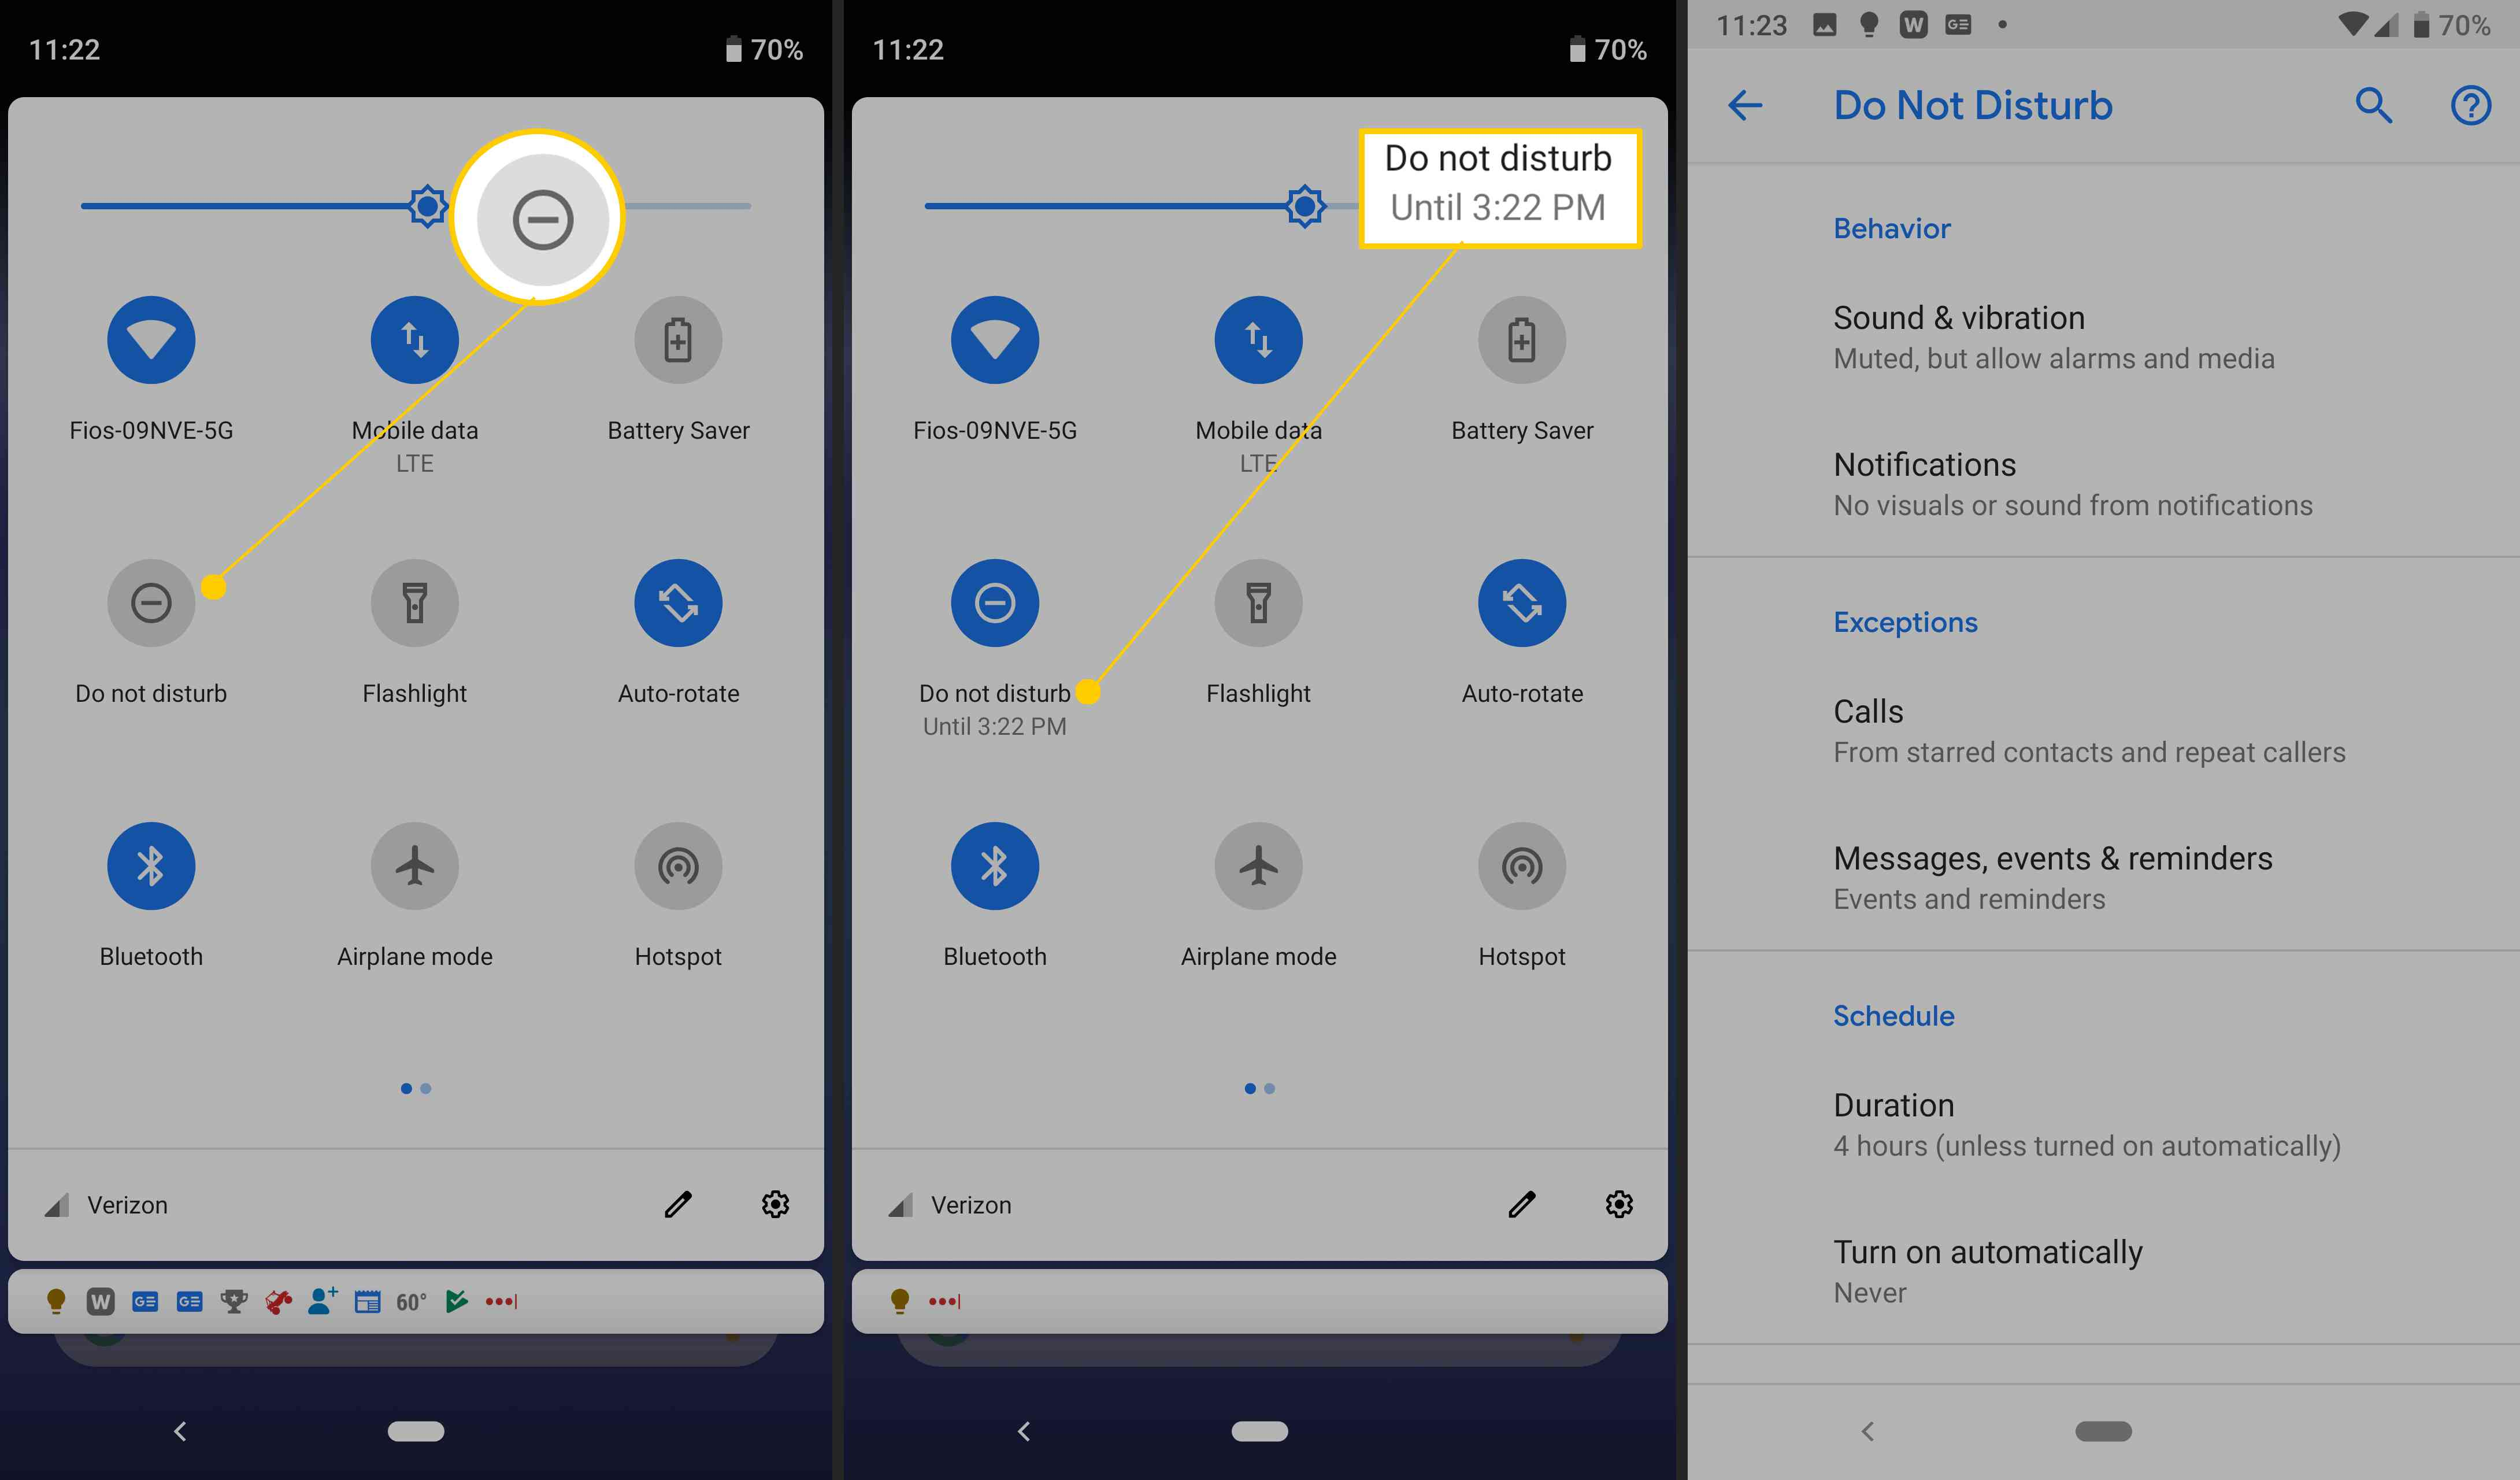 How To Use Do Not Disturb On Android